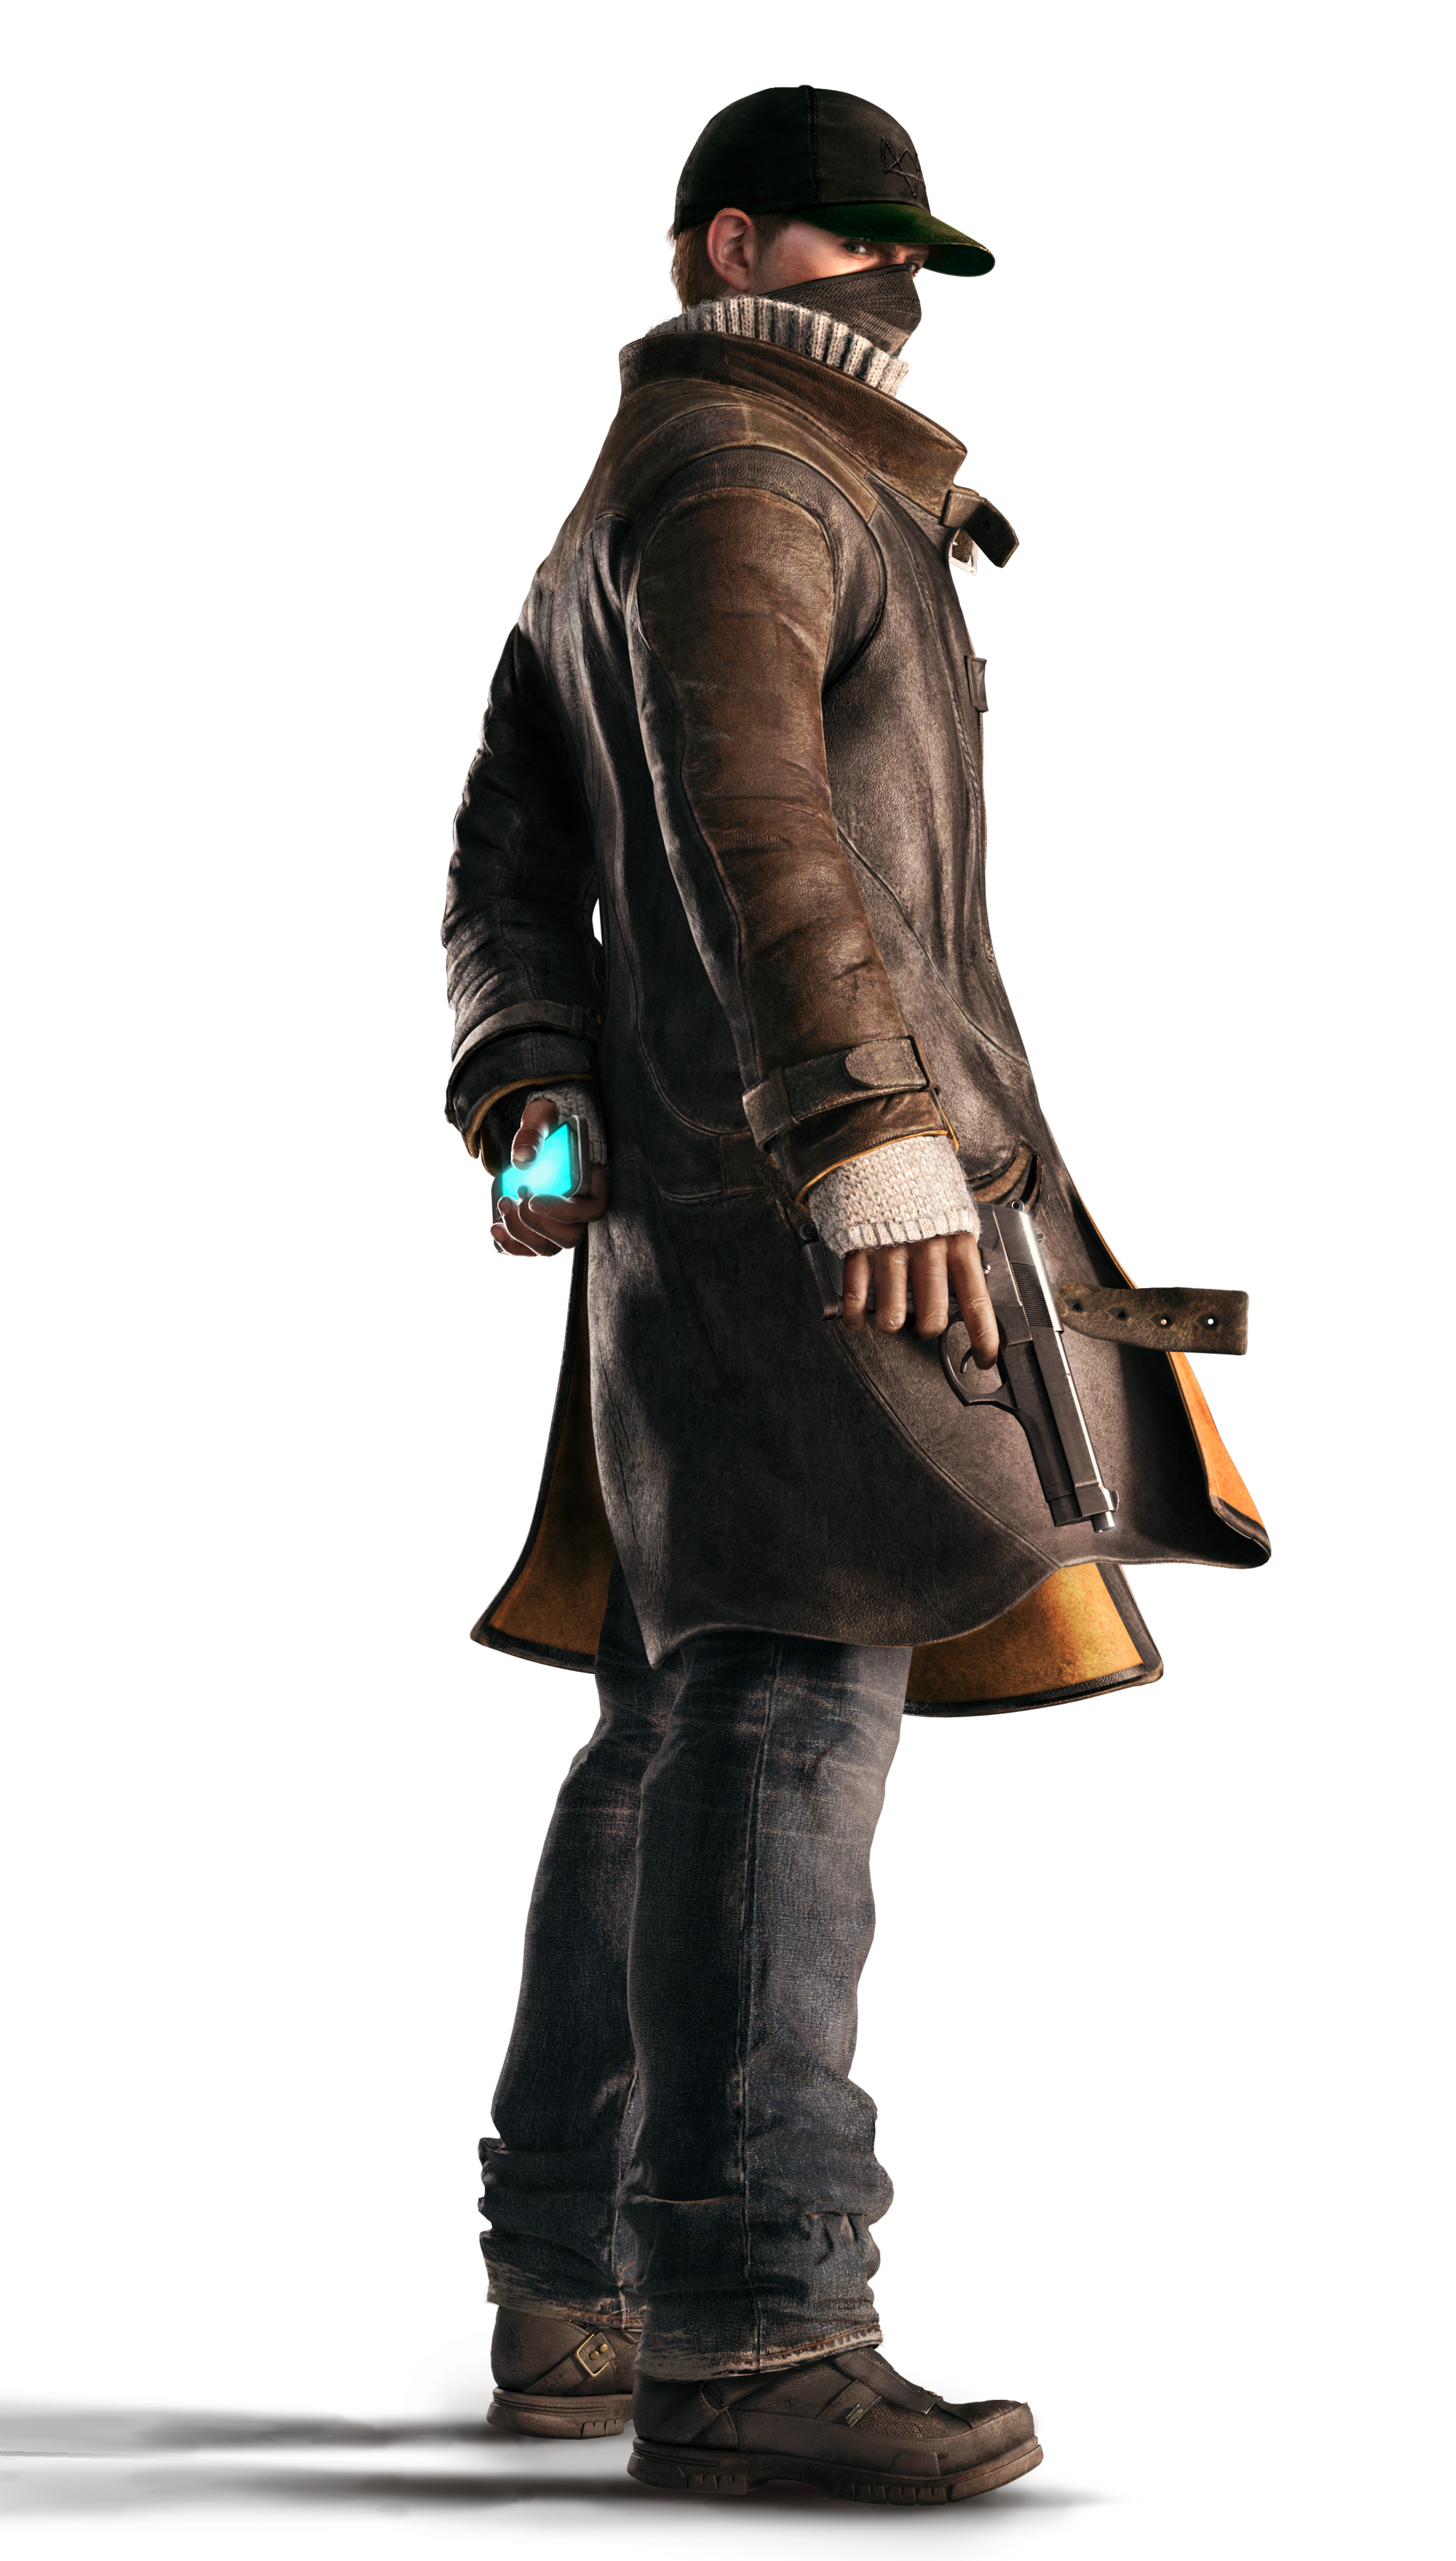 Tower clipart present. Aiden pearce watch dogs